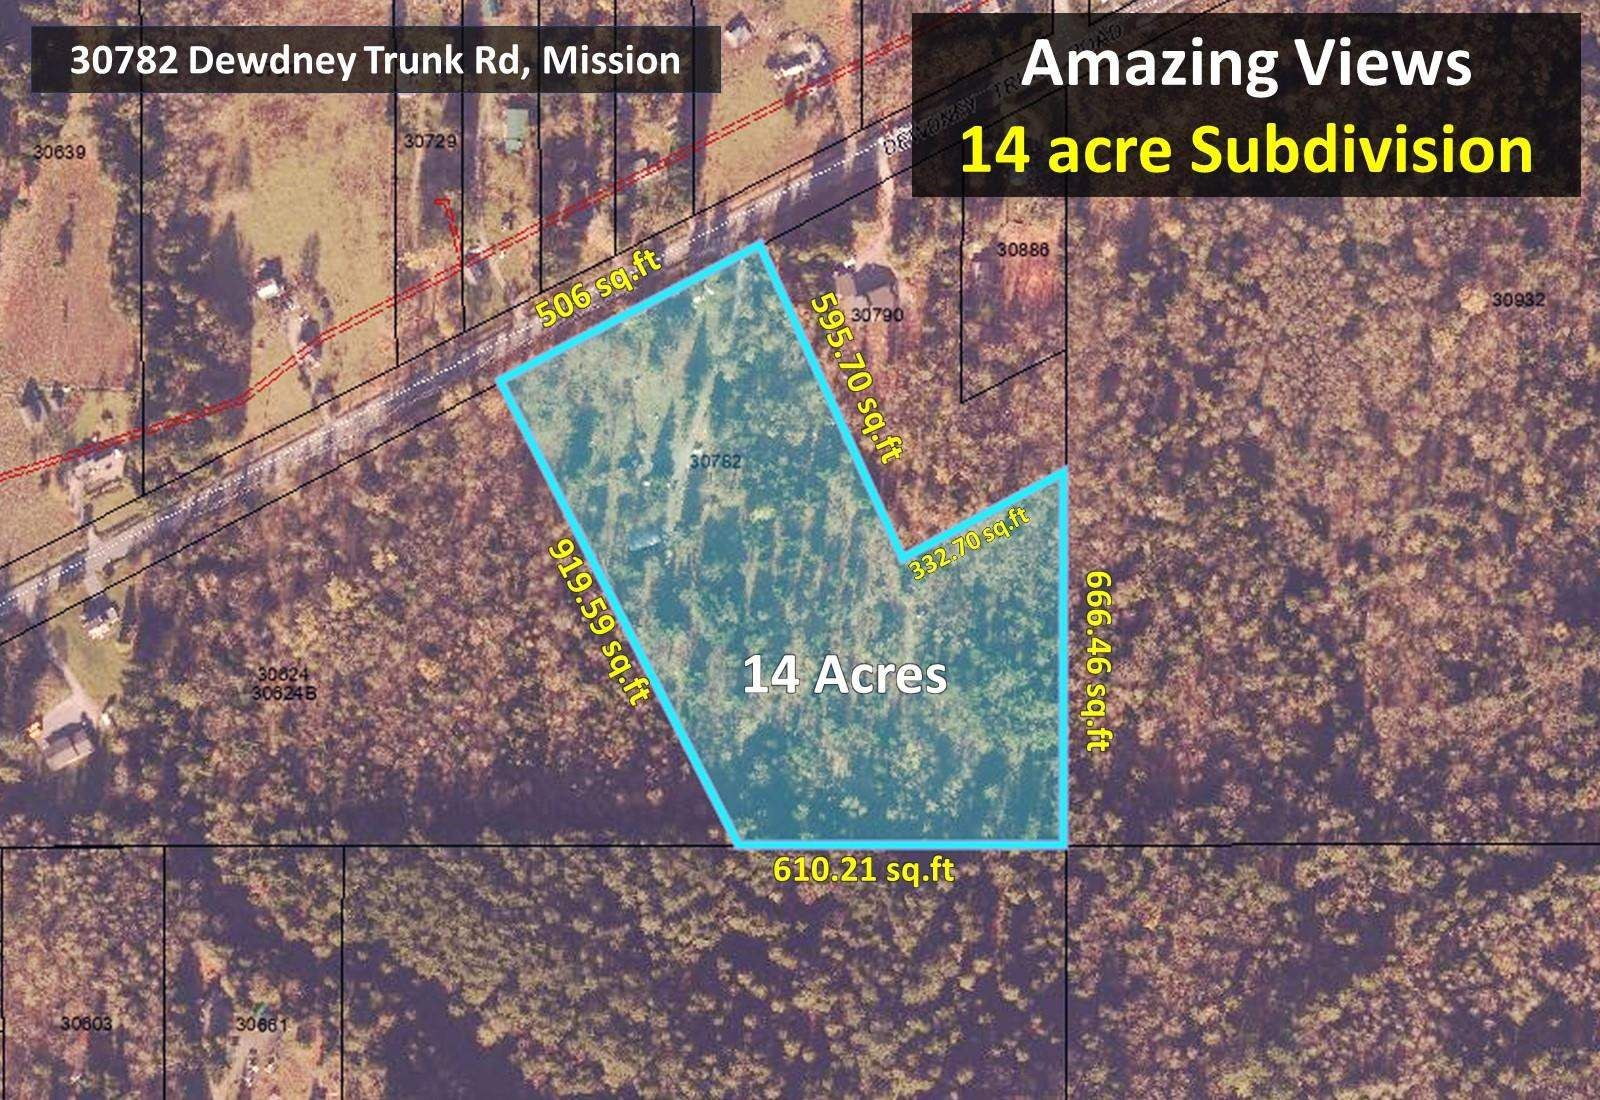 """Photo 3: Photos: 30782 DEWDNEY TRUNK Road in Mission: Stave Falls Land for sale in """"HAYWARD LAKE ESTATES INC."""" : MLS®# R2607109"""